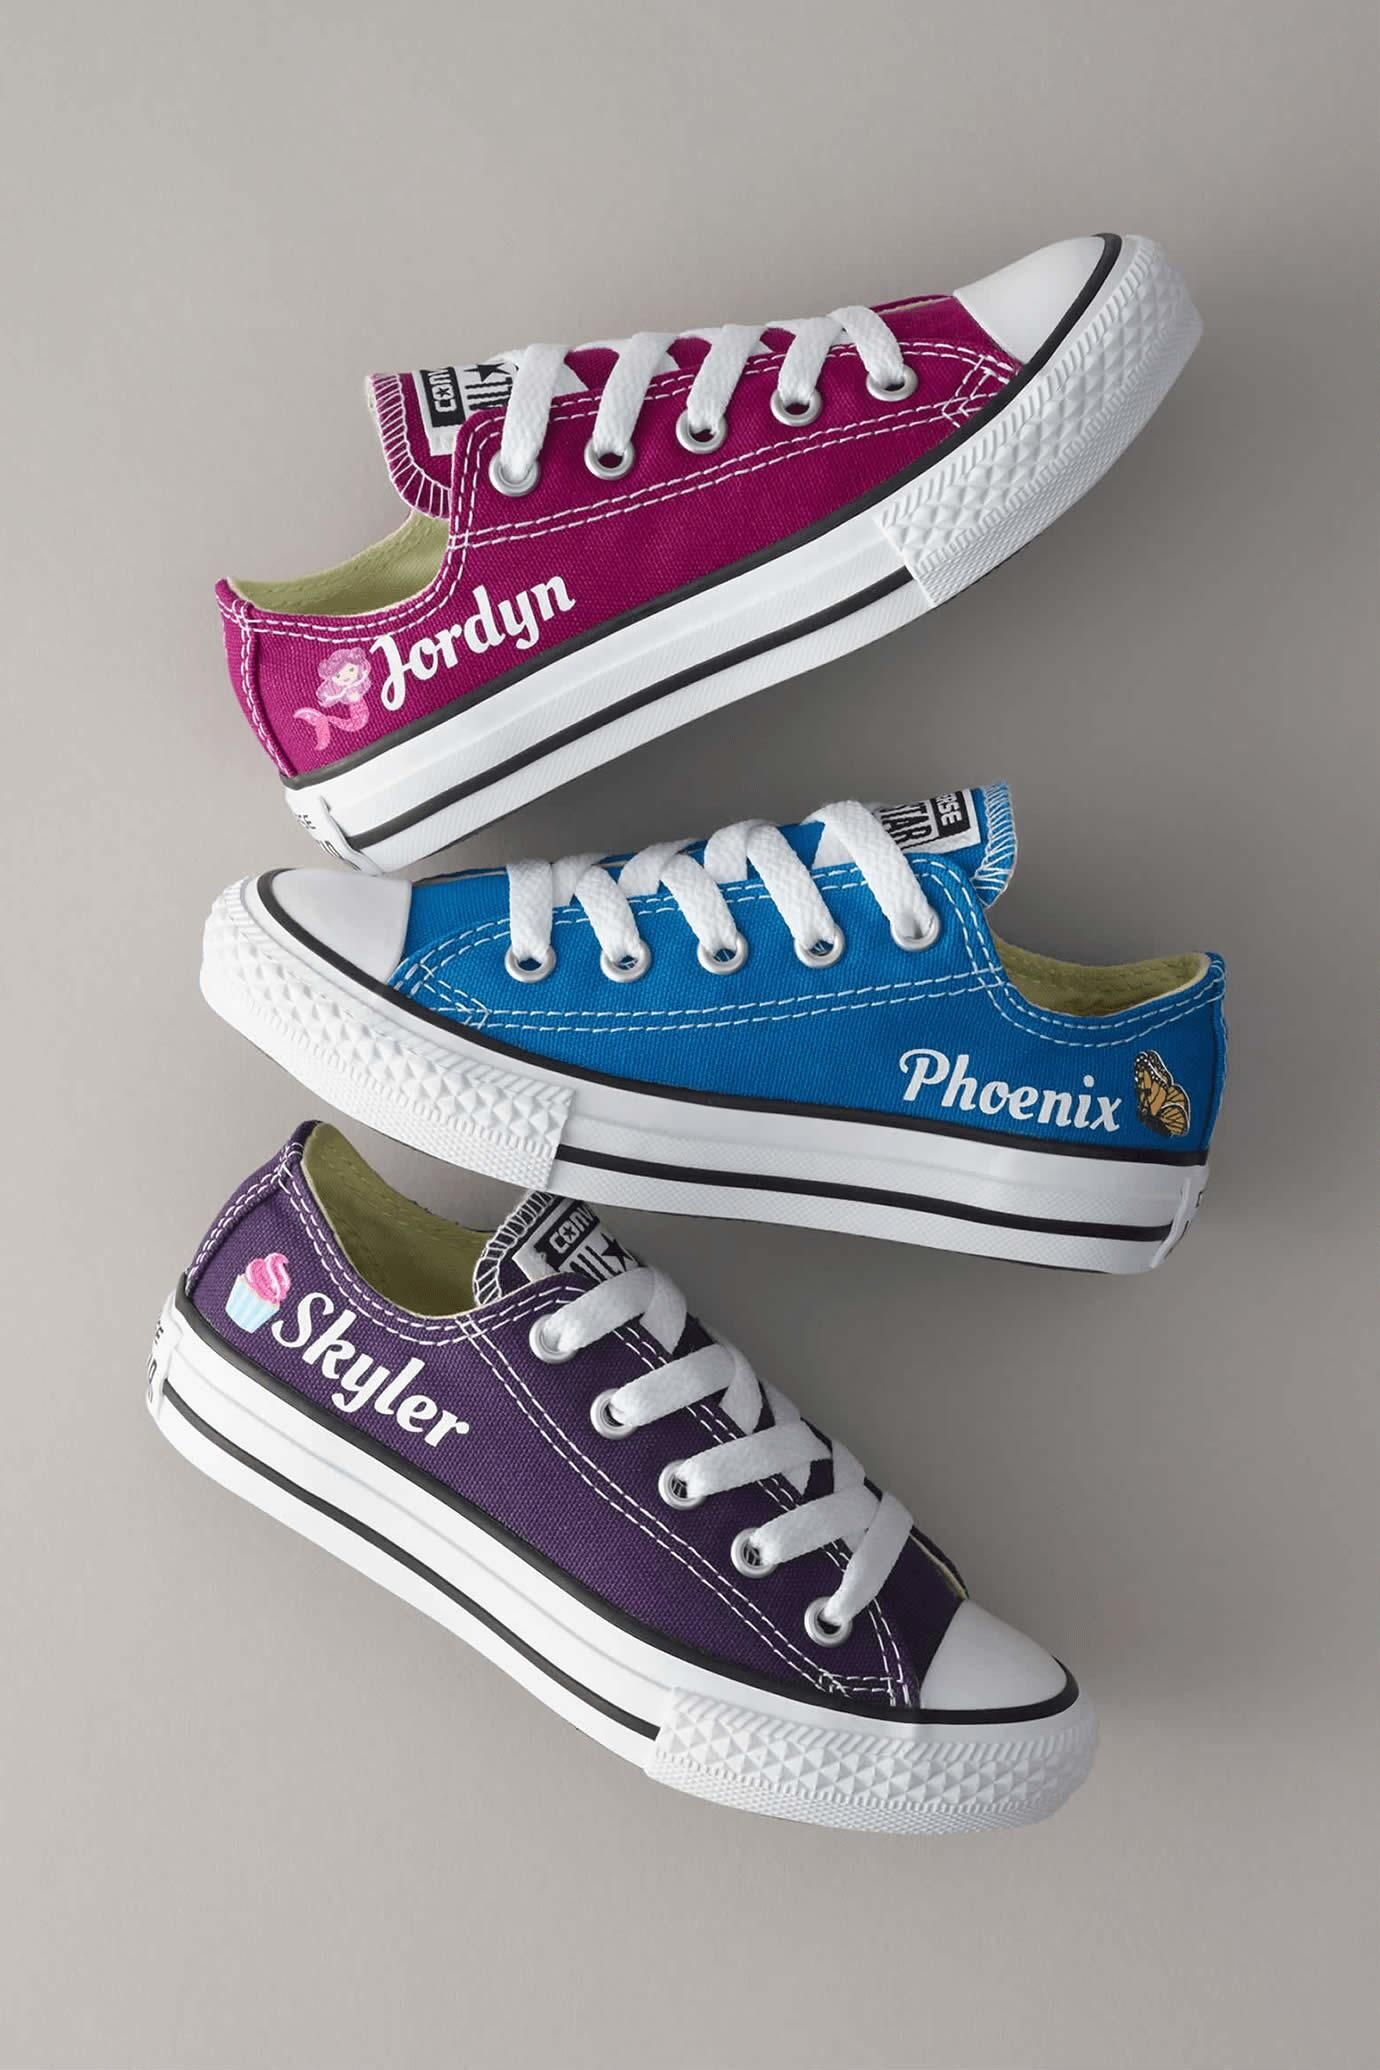 Customize your own chuck taylors from converse with your